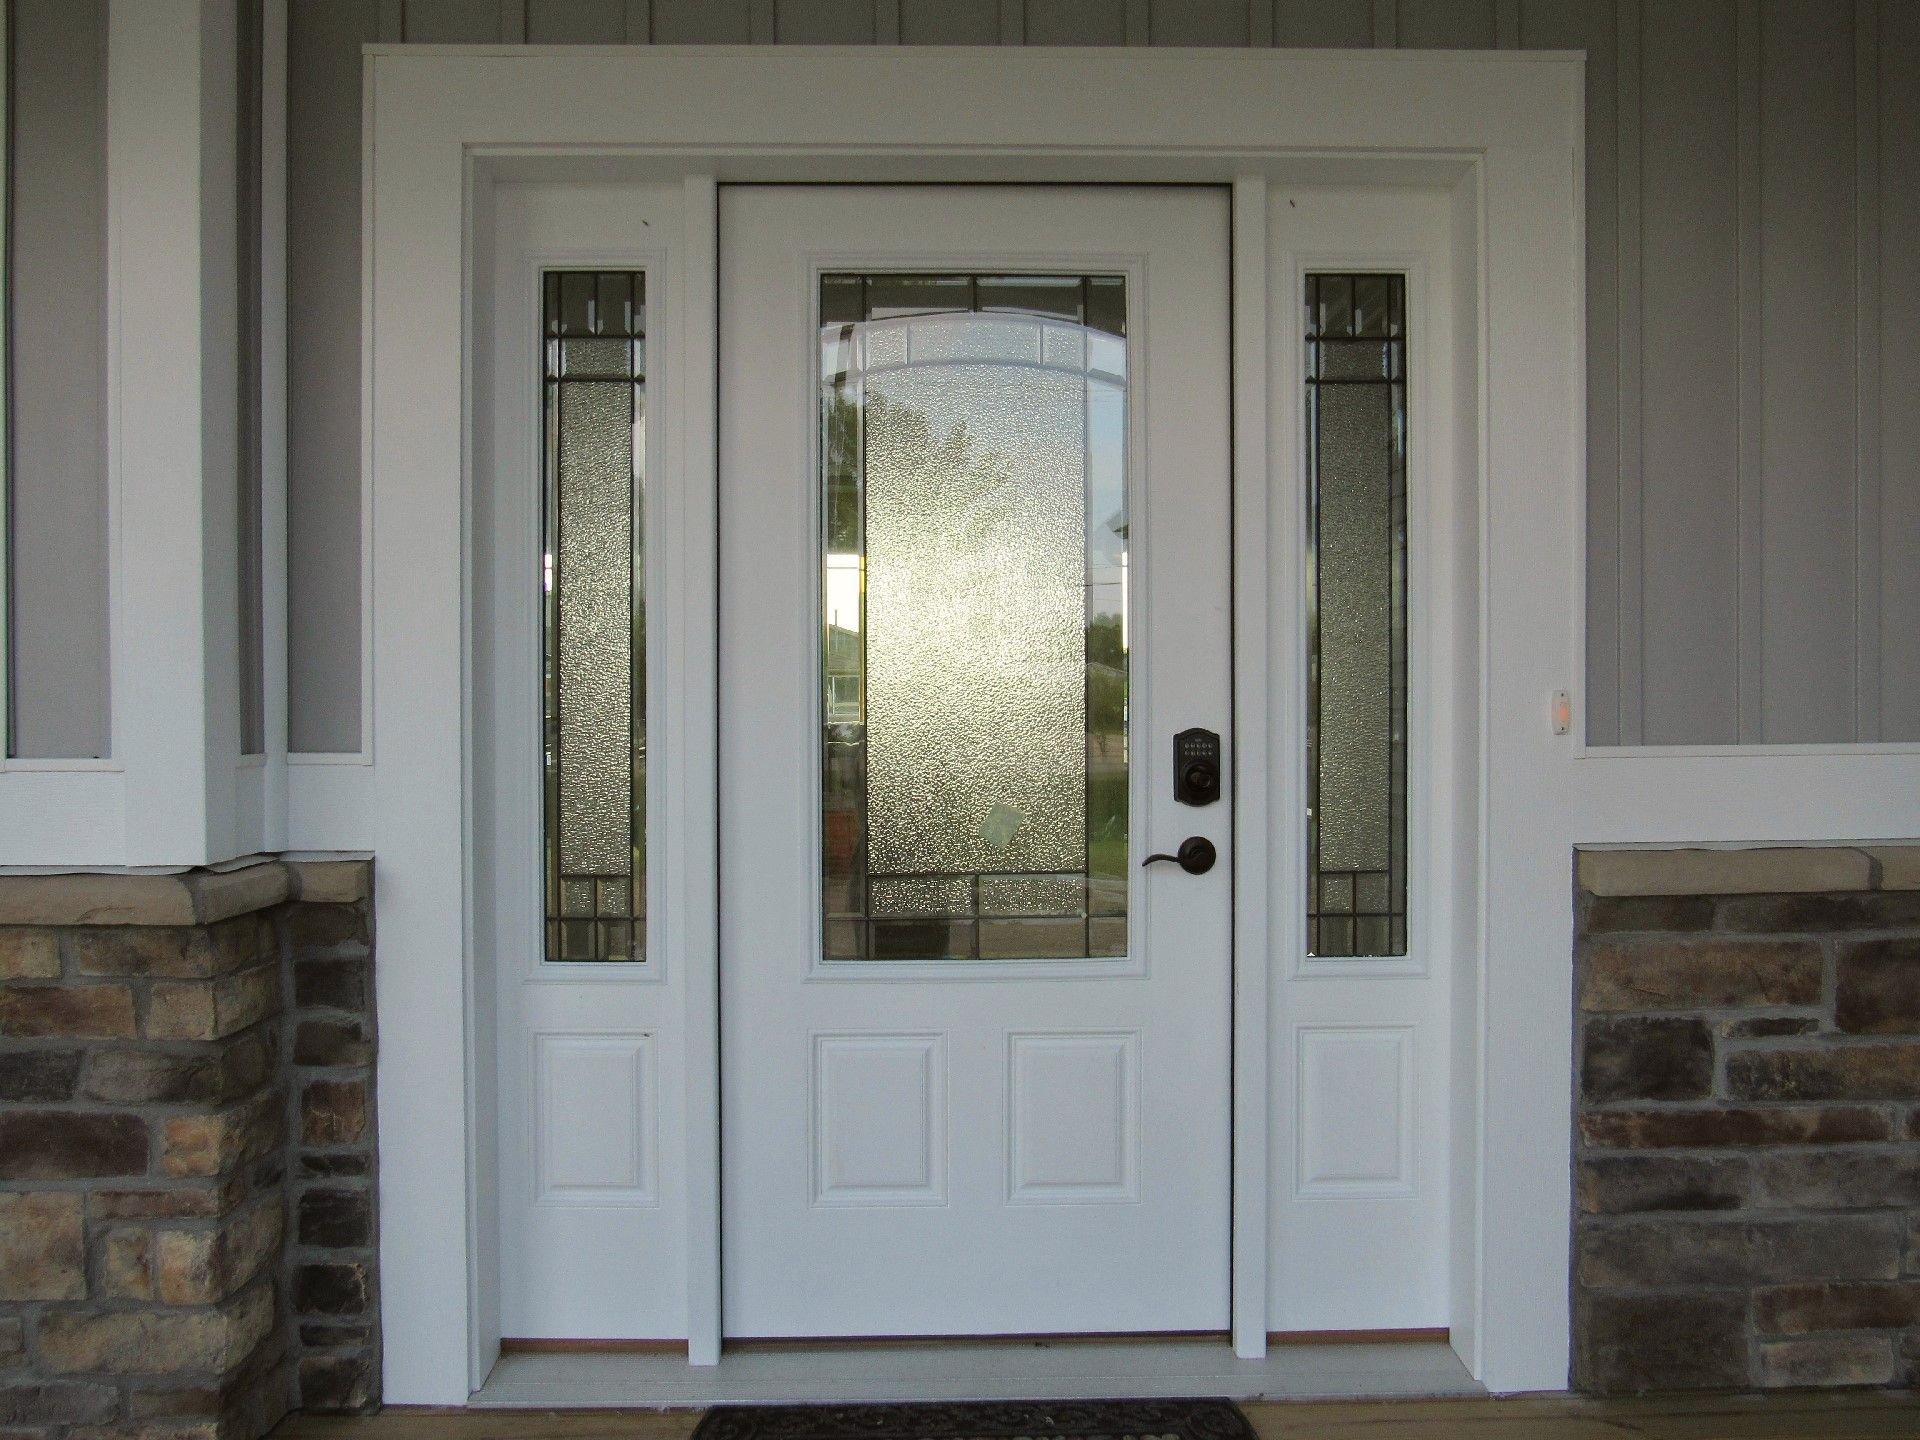 Beatiful White Exterior Door With Decorative Windows Oil Rubbed Bronze Lock Set Paired With The Stark White Modular Home Builders Home Builders Modular Homes